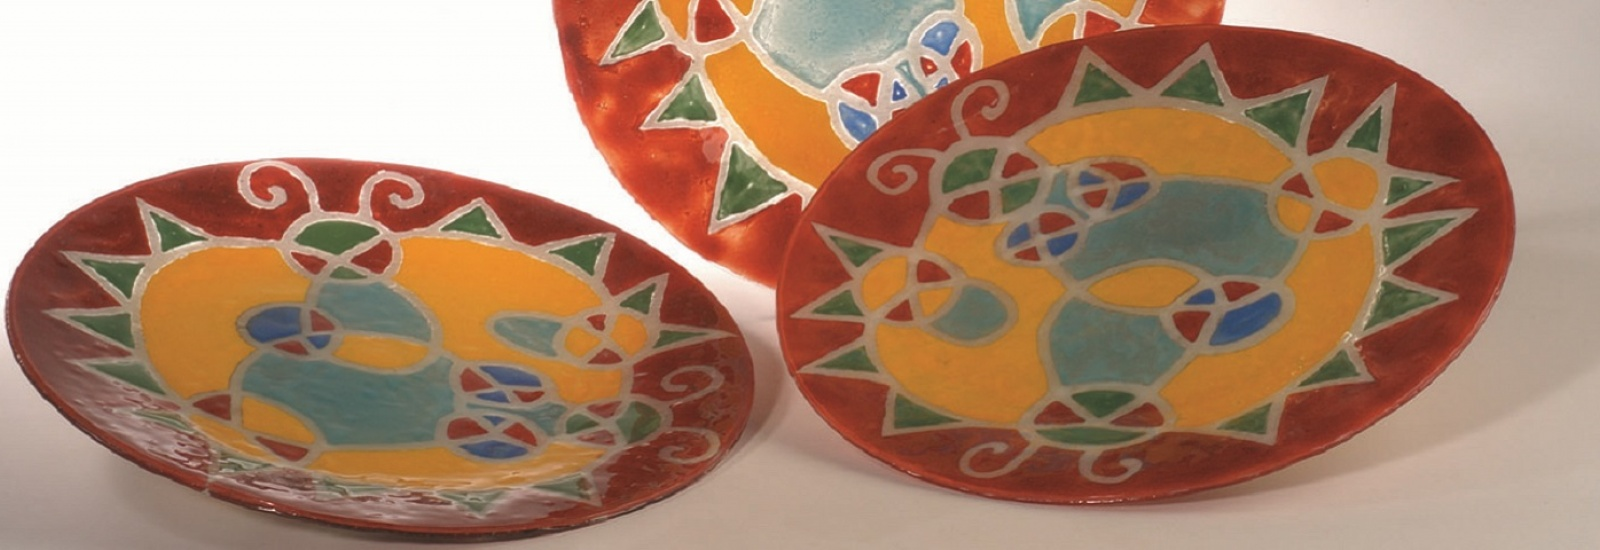 3 painted glass dishes